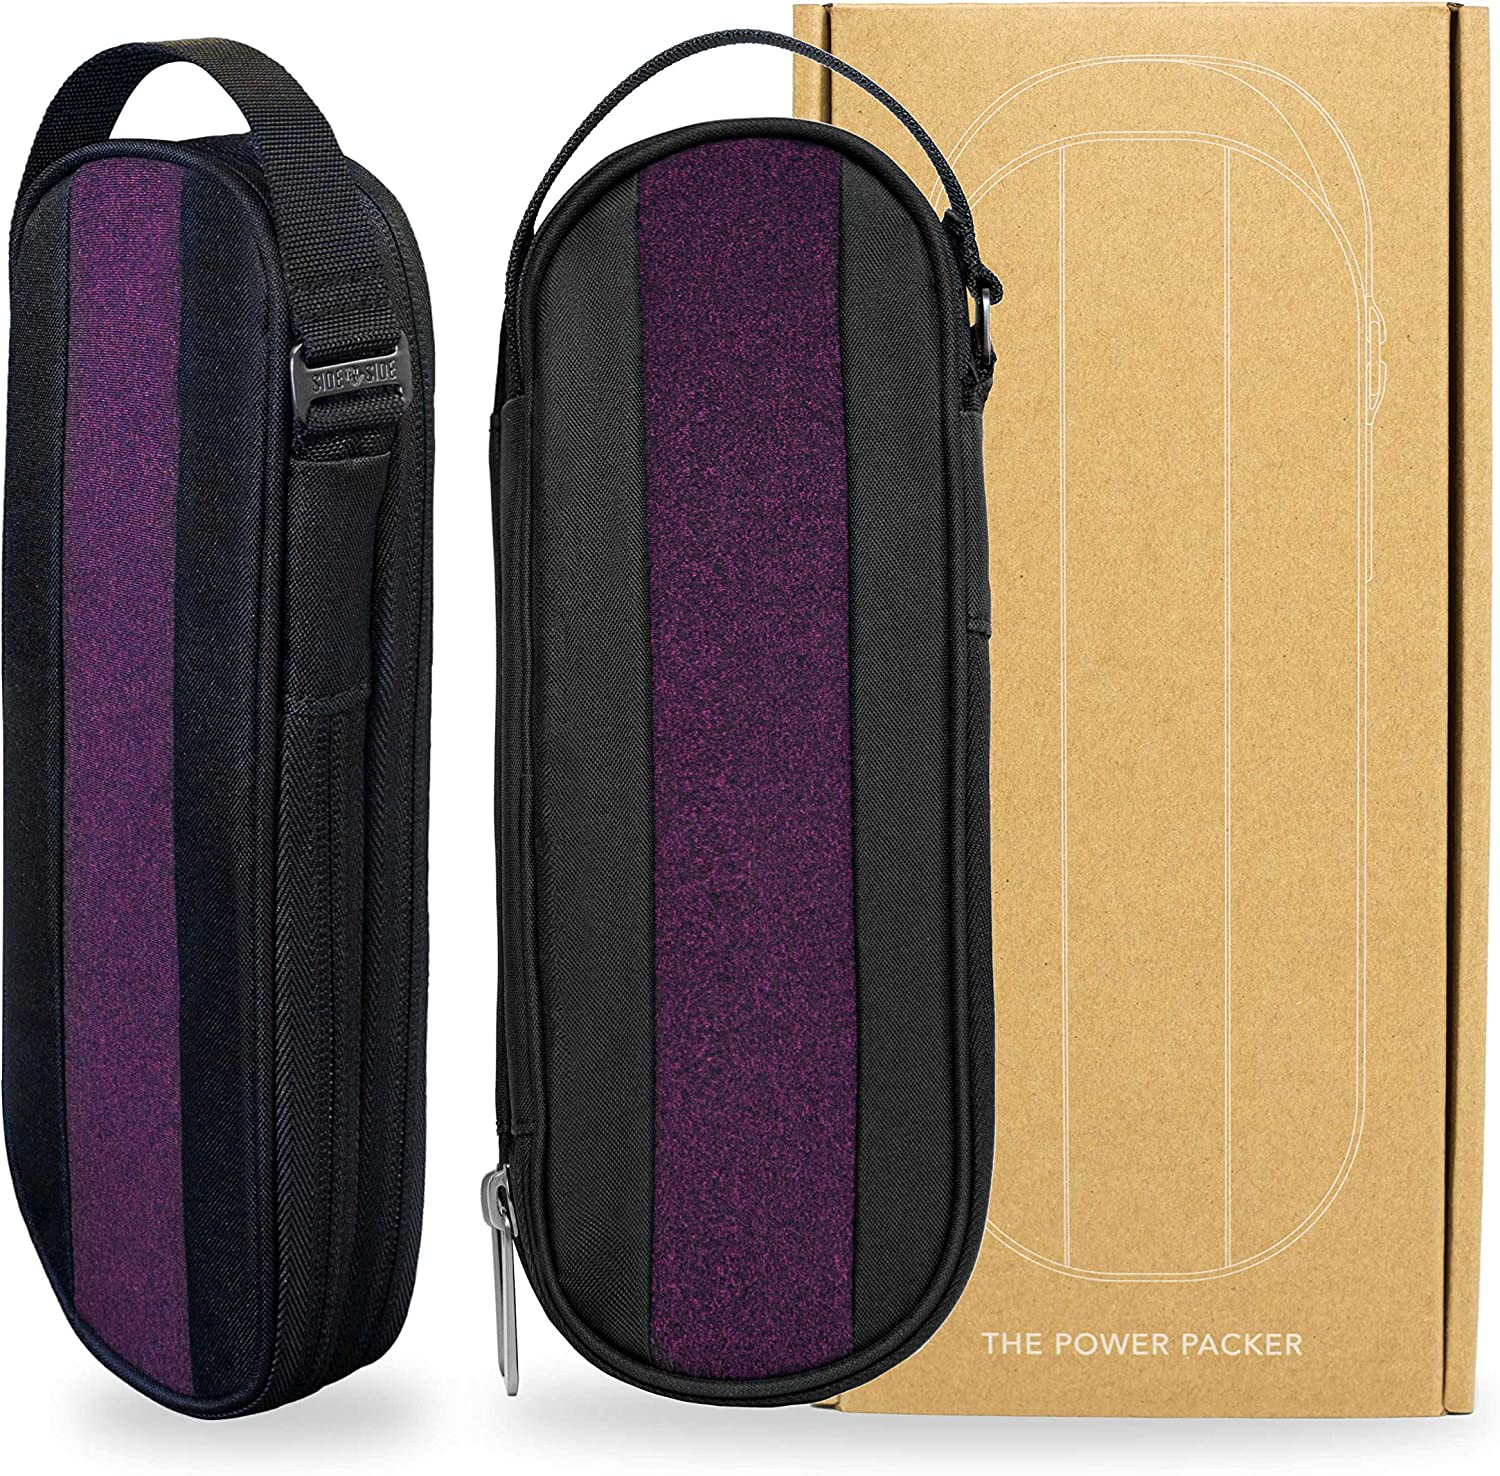 Bordeaux Cables /& EDC Gear Pouch Electronics /& Cord Case Premium Travel Tech Bag Organiser POWER PACKER by SIDE BY SIDE